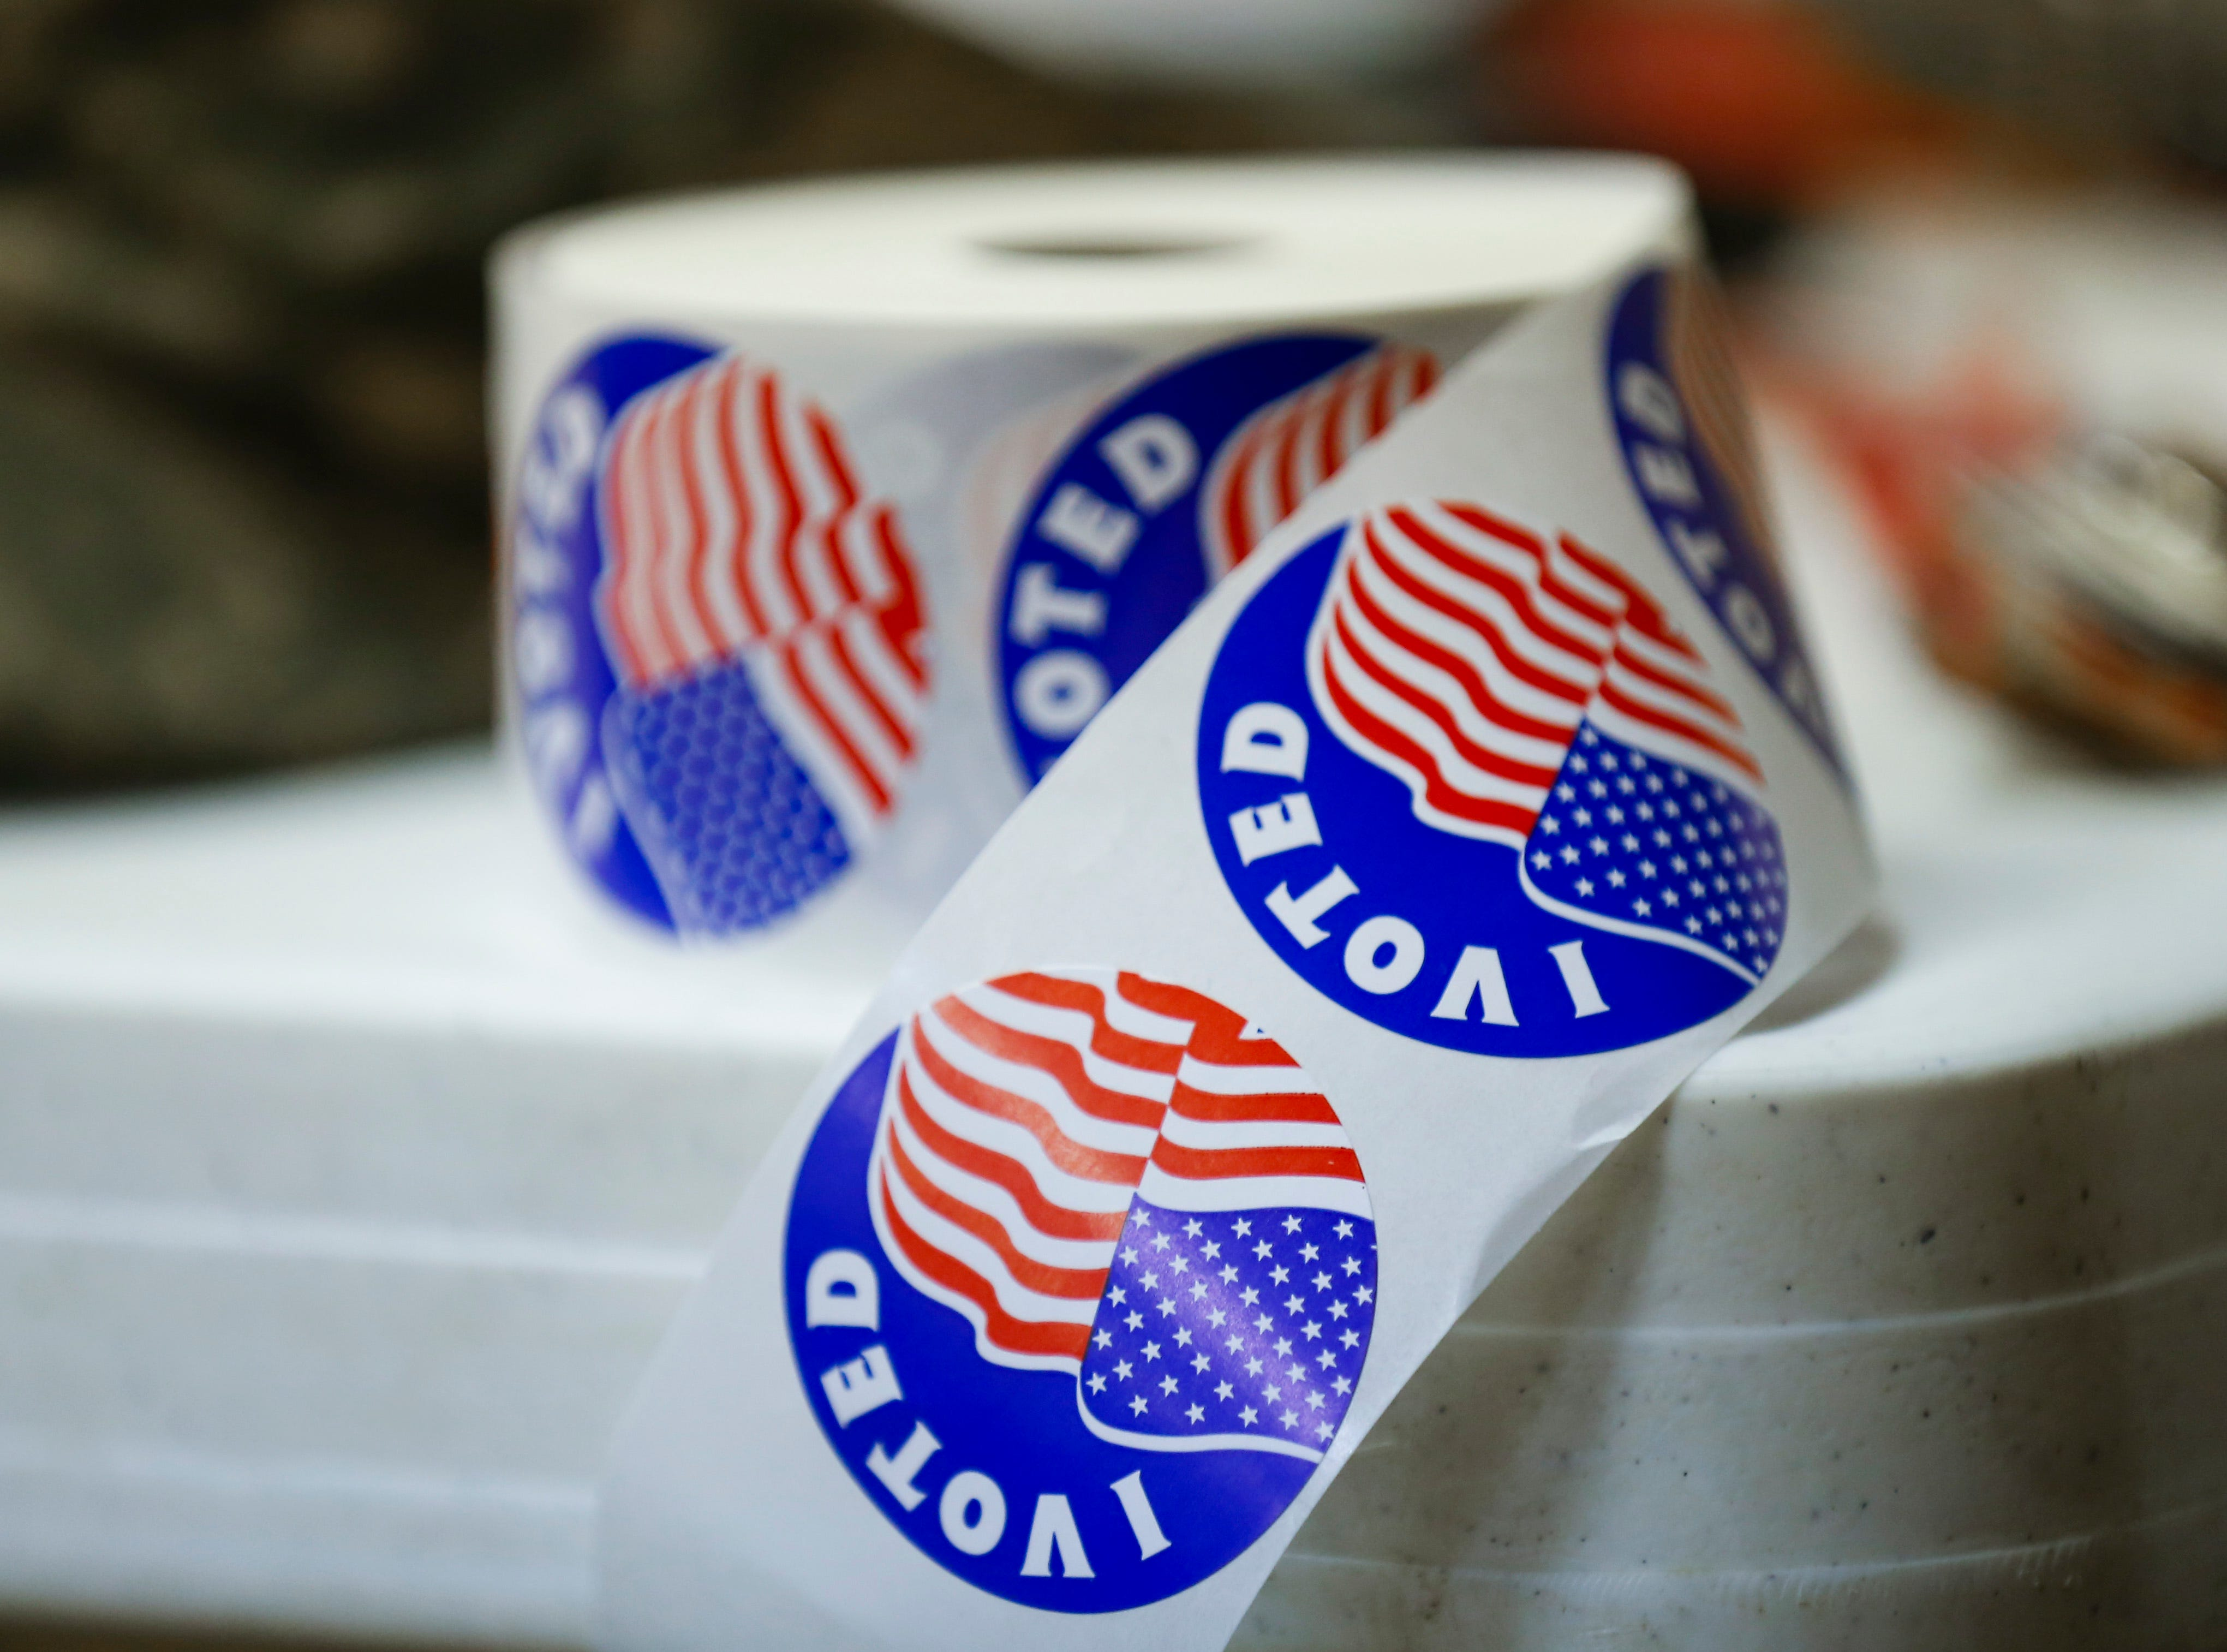 Voting stickers at the Woodland Heights polling location on Tuesday, Nov. 6, 2018.